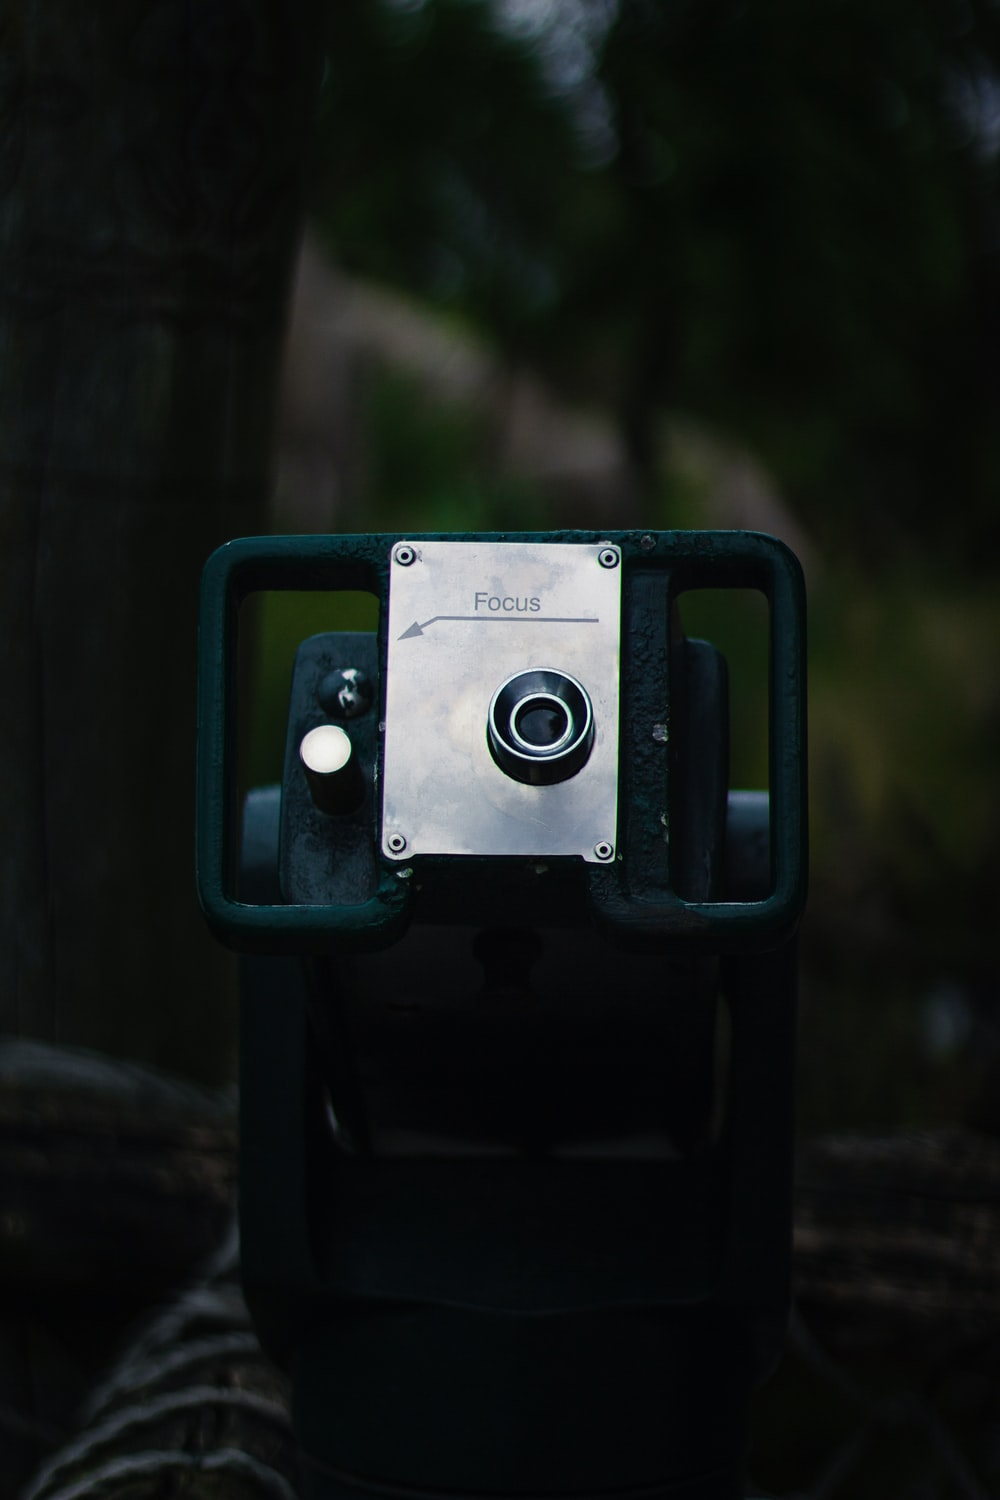 green and black camera on brown wooden surface